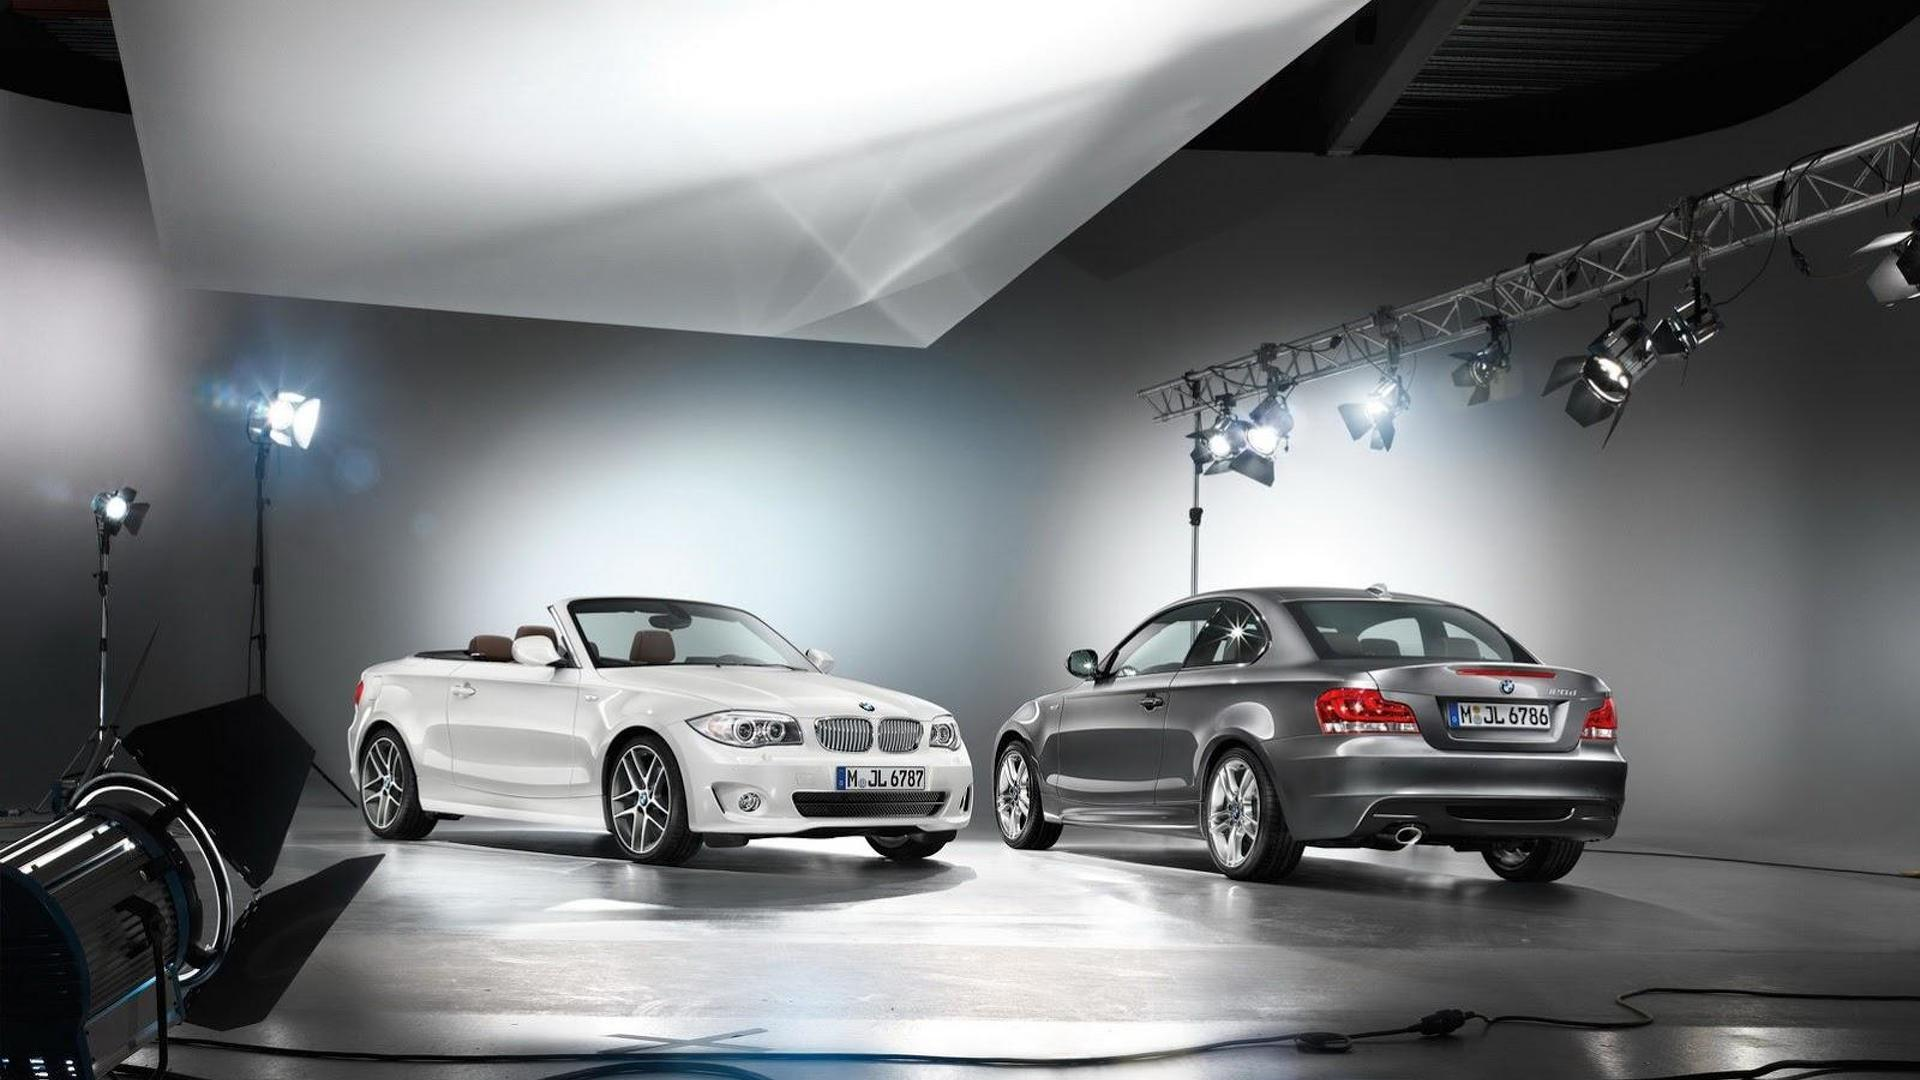 Bmw 1 Series Coupe And Convertible Getting Limited Edition